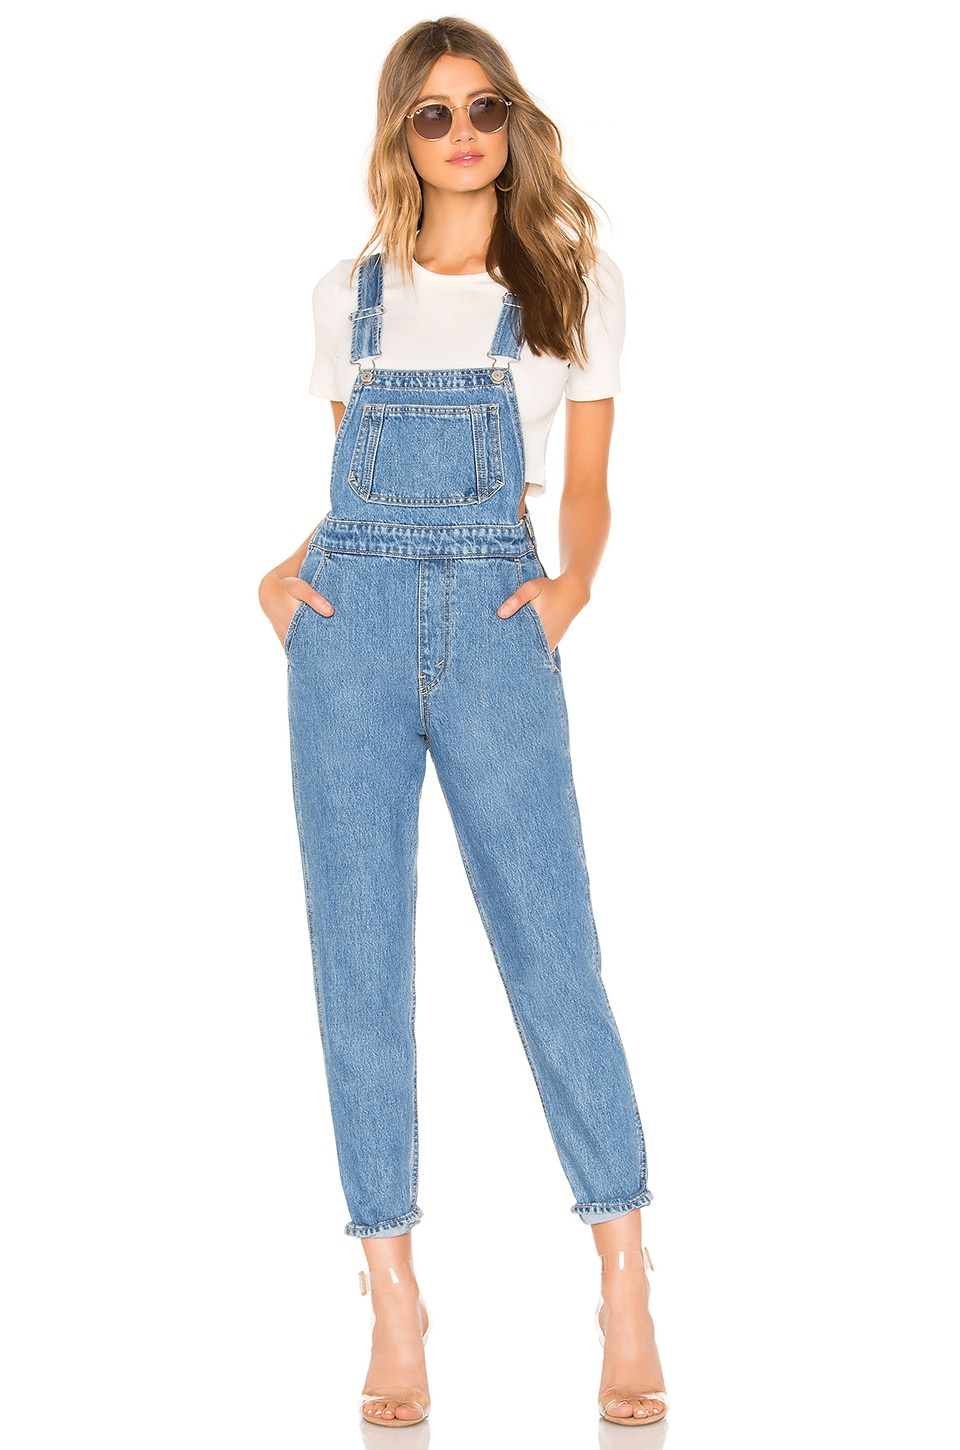 LEVI'S Mom Overall in Hey Shorty